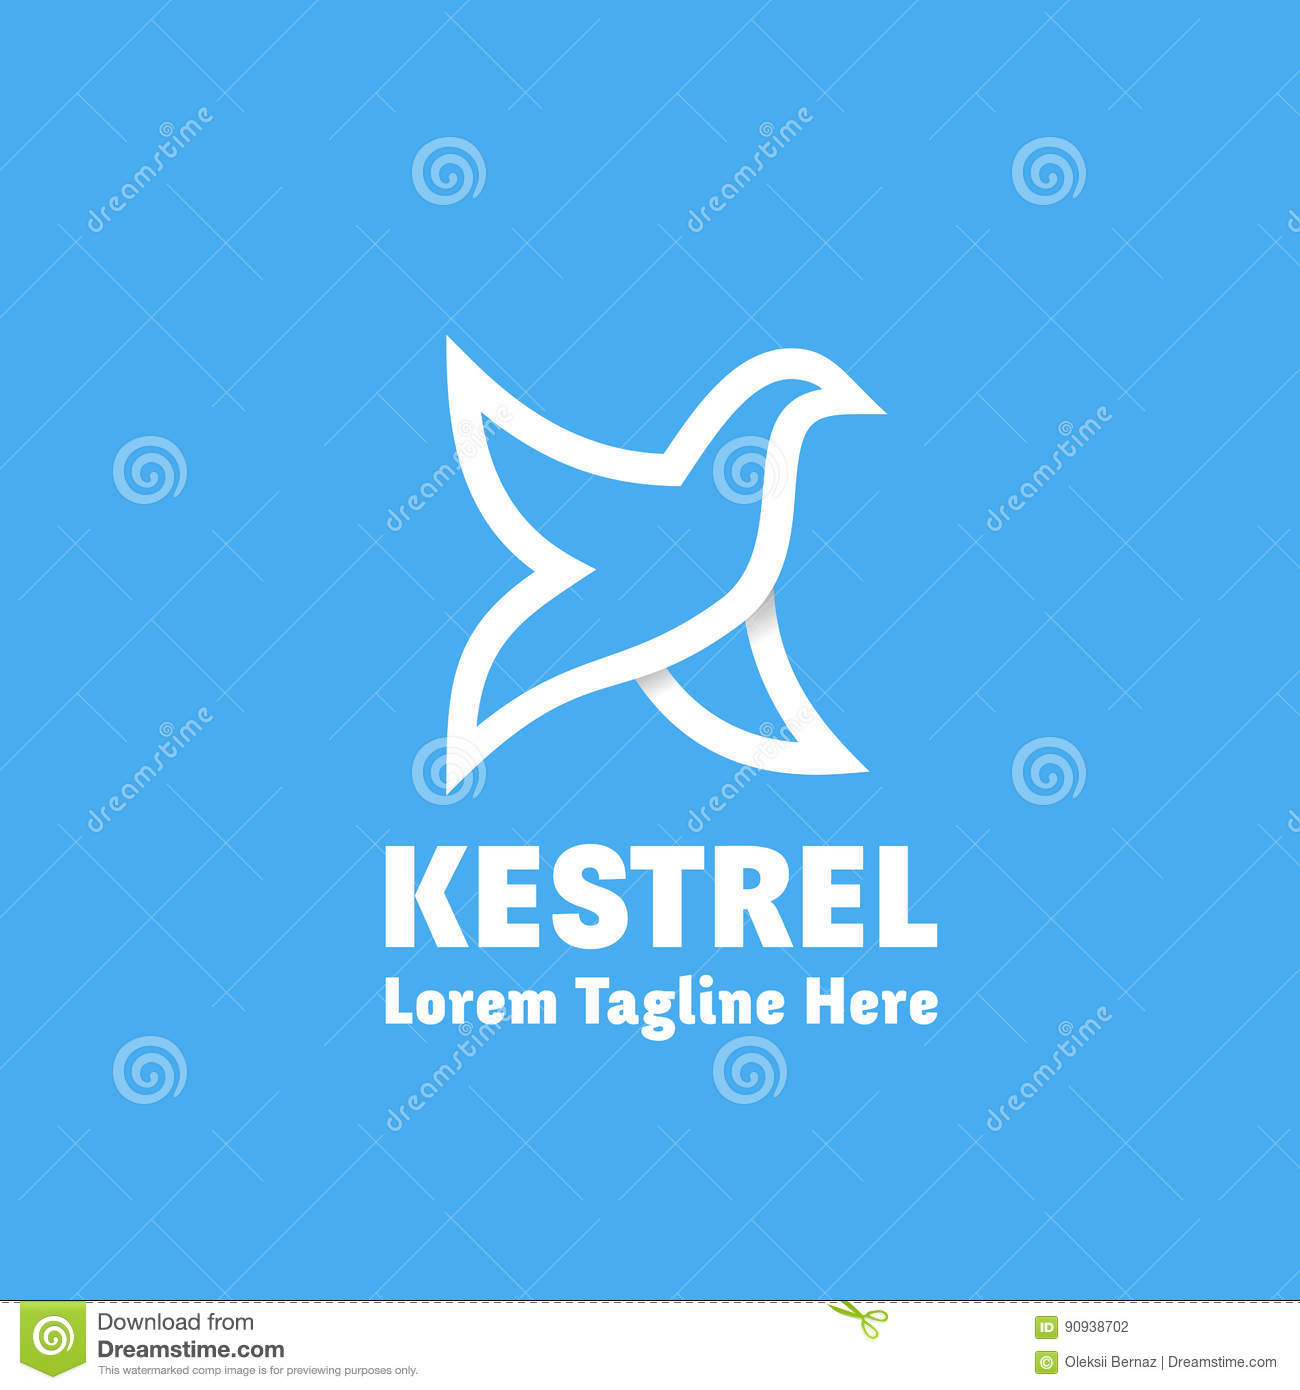 Kestrel Abstract Vector Sign Emblem Or Logo Template Bird As Letter K Symbol Line Style Silhouette With Typography White On Blue Background